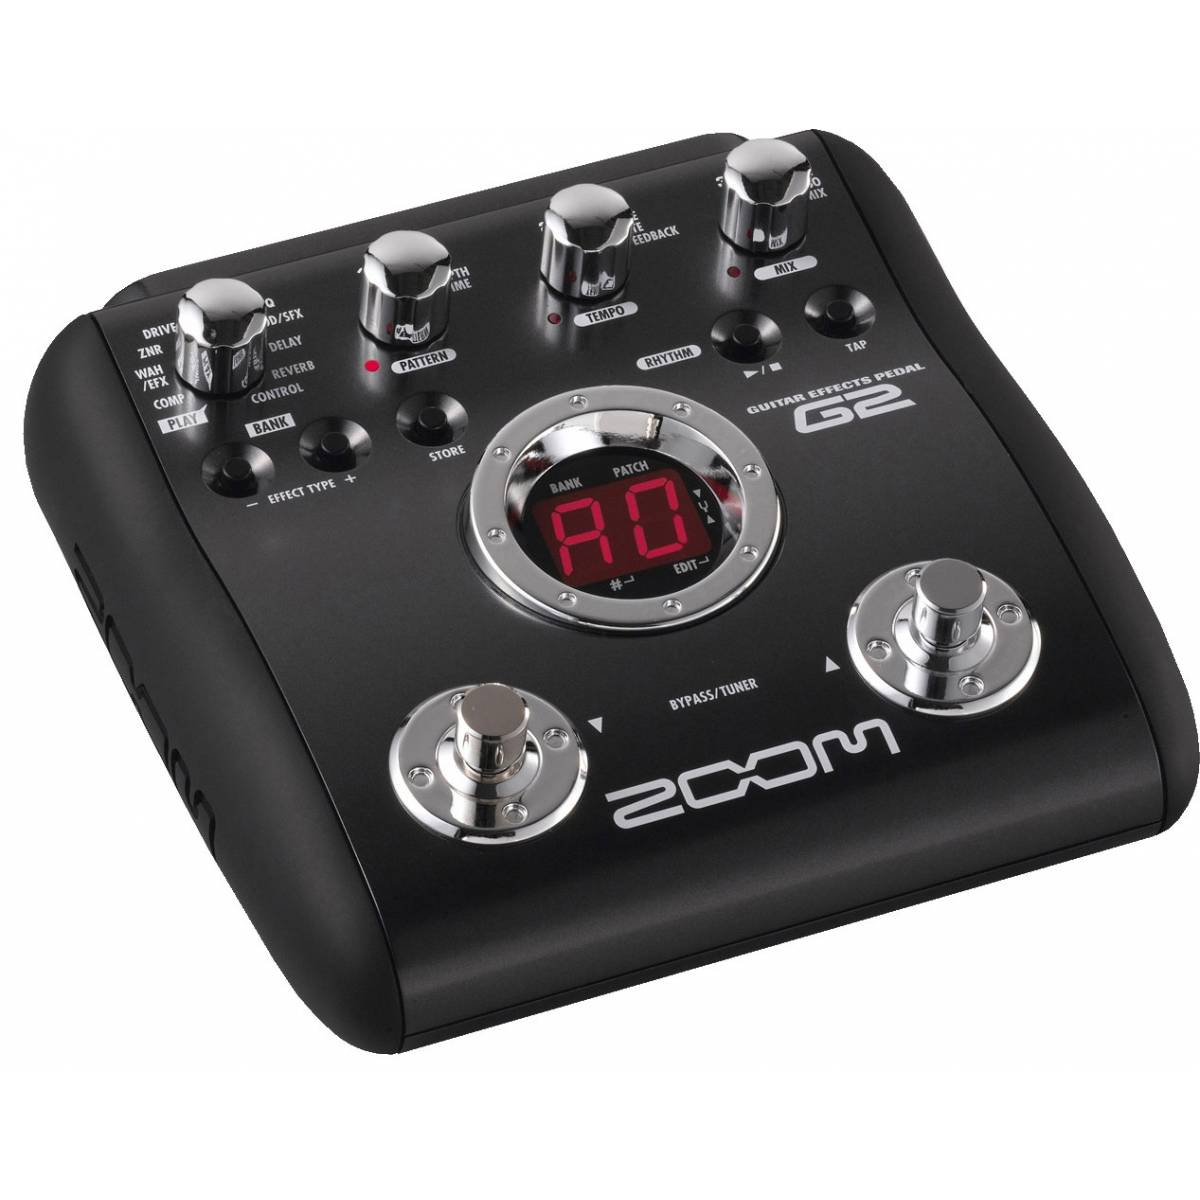 zoom g2 guitar effects pedal. Black Bedroom Furniture Sets. Home Design Ideas